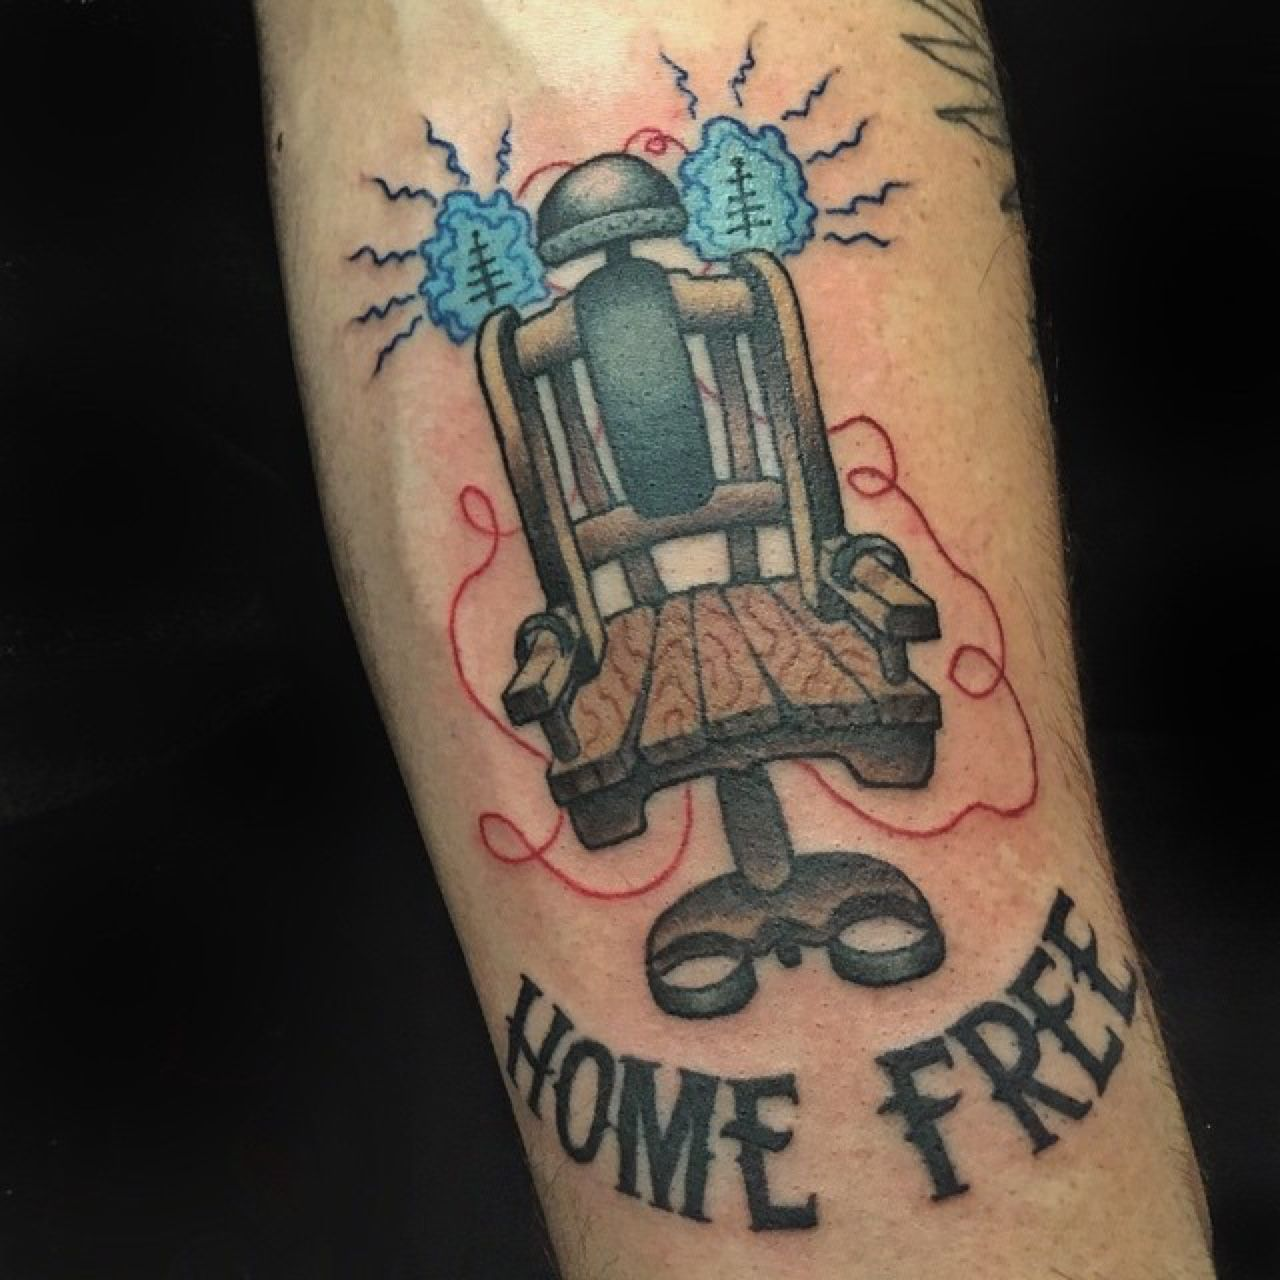 Electric chair tattoo by mike grant saint sabrinas in